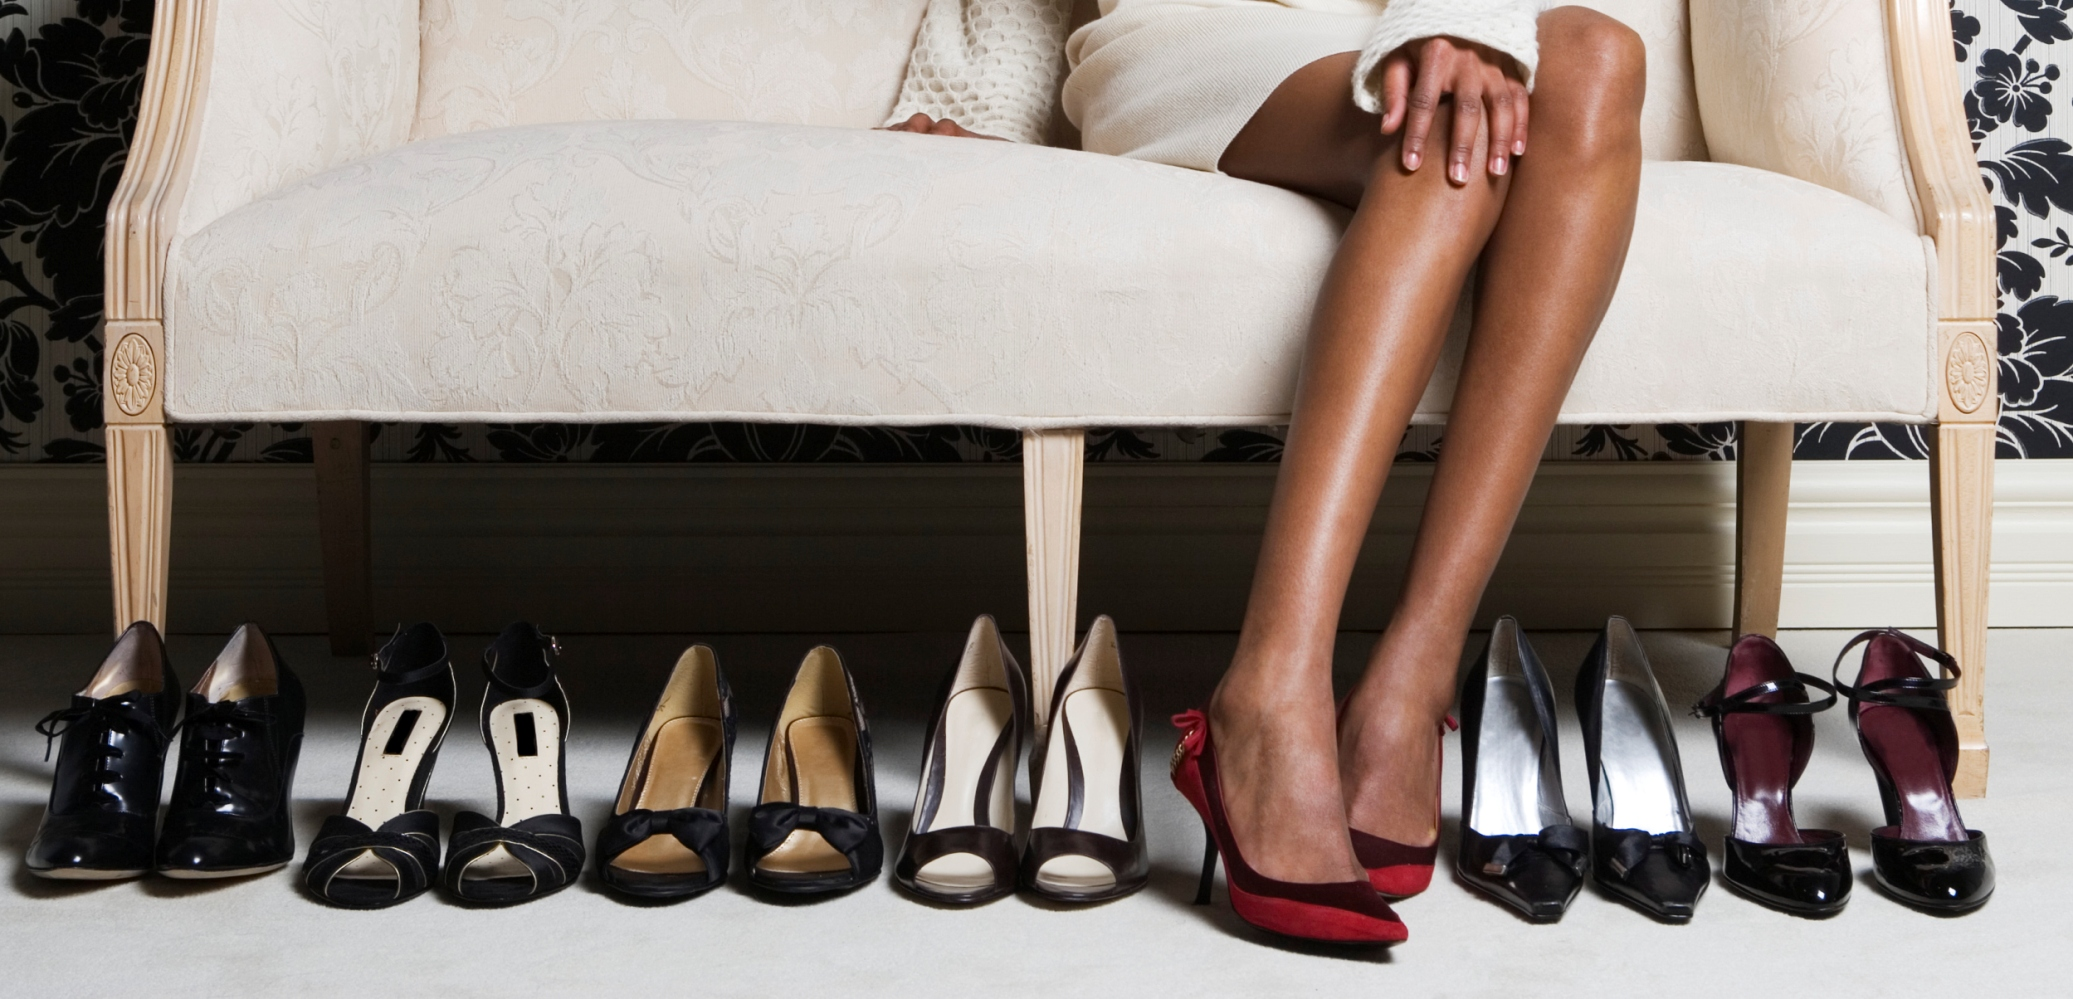 Top Tips And Advice For Your Next Pair Of Shoes